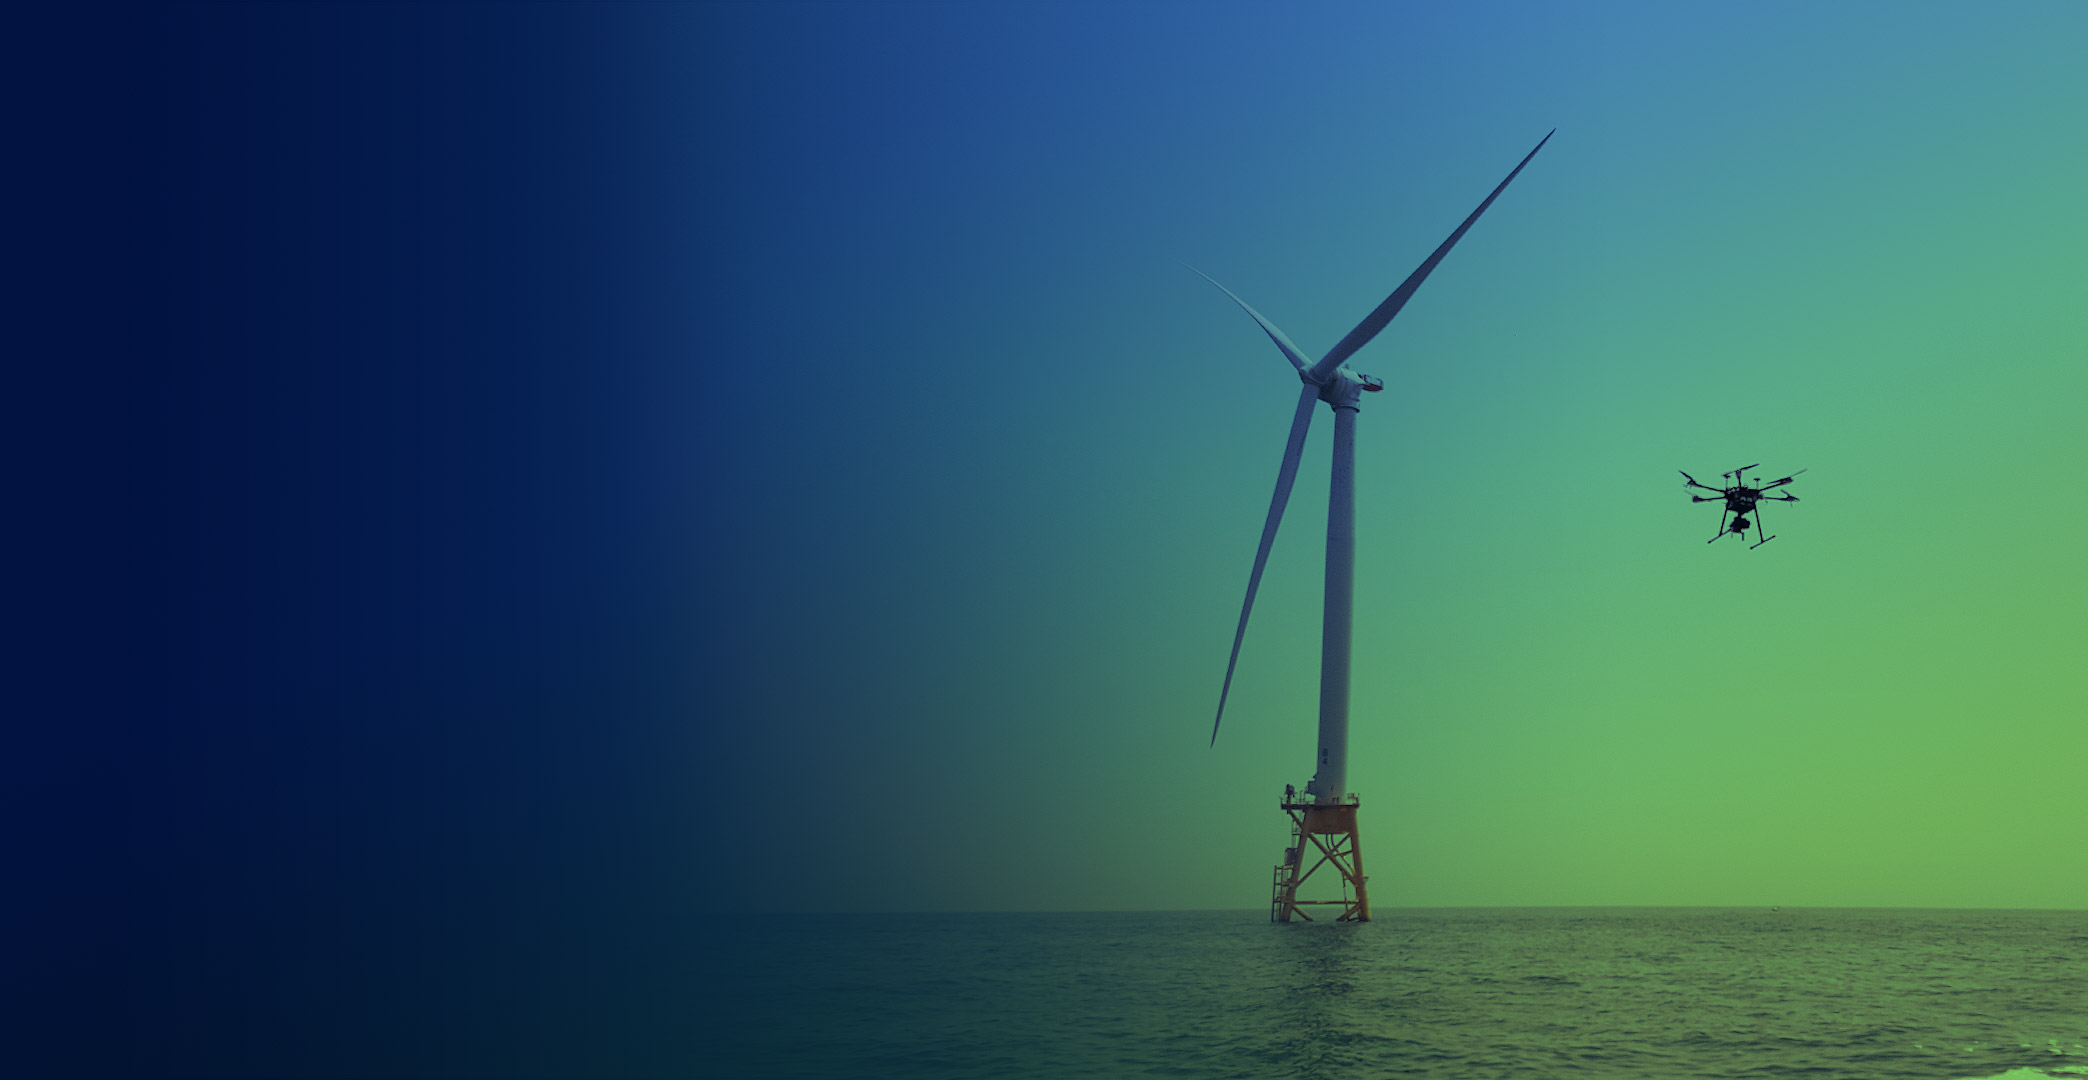 us-offshore-wind-drone-inspection-services4